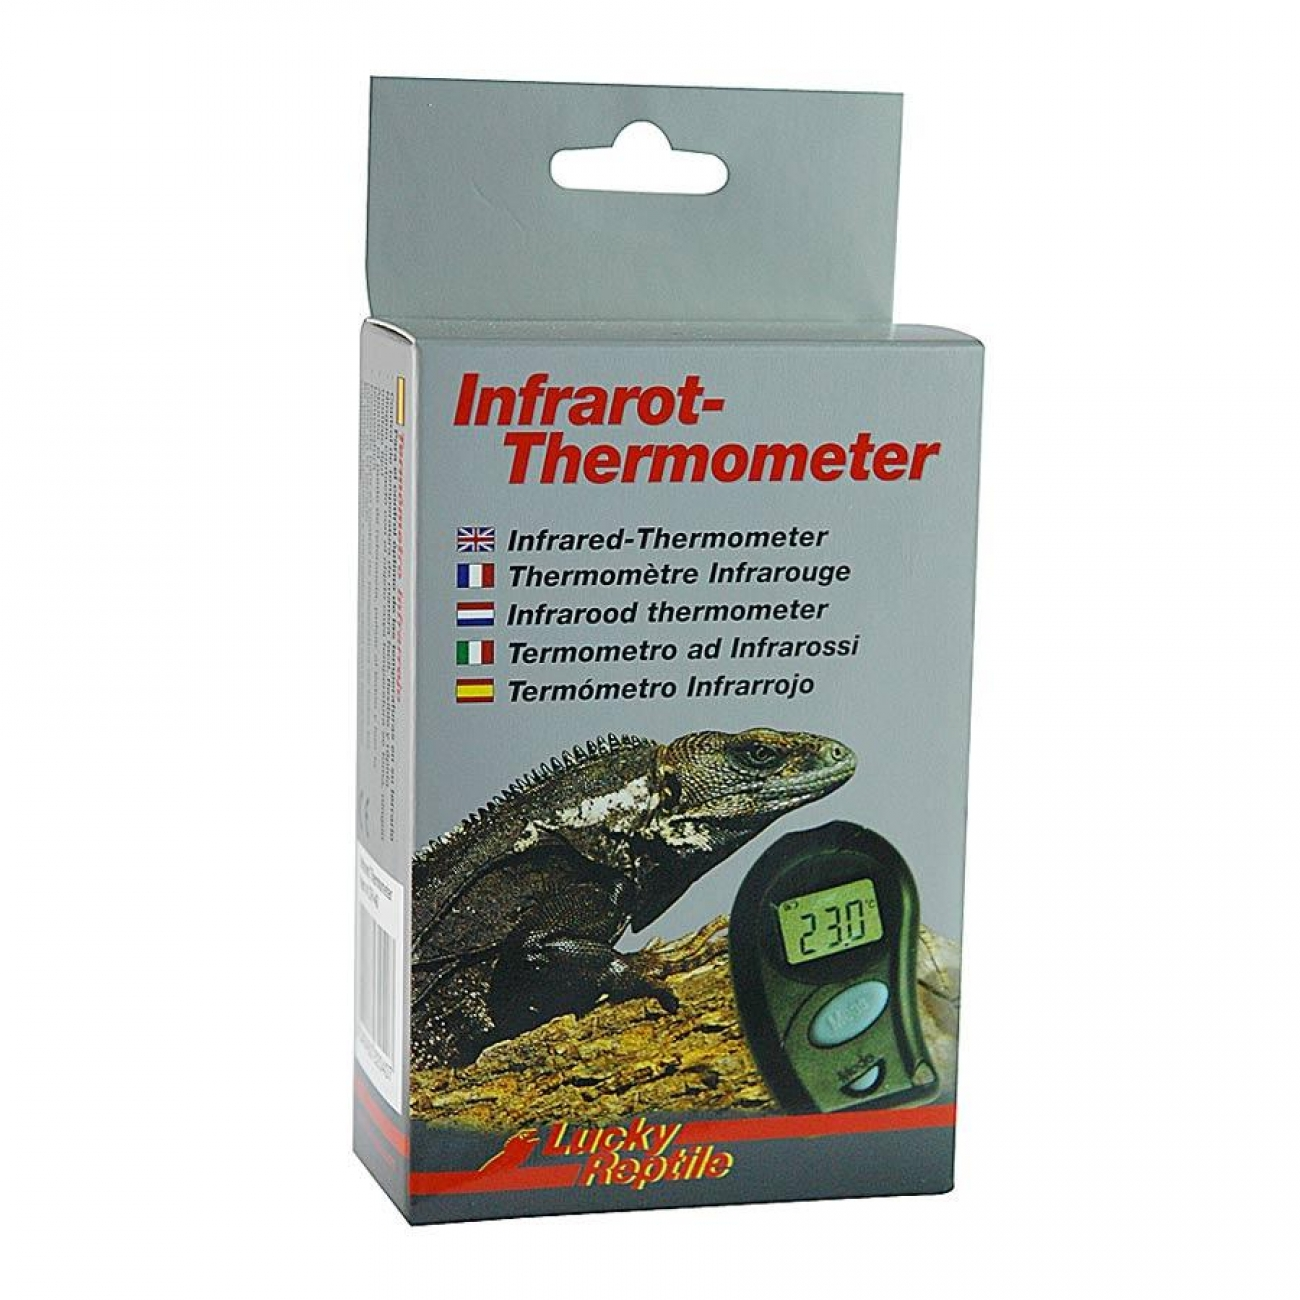 Infrarot – Thermometer